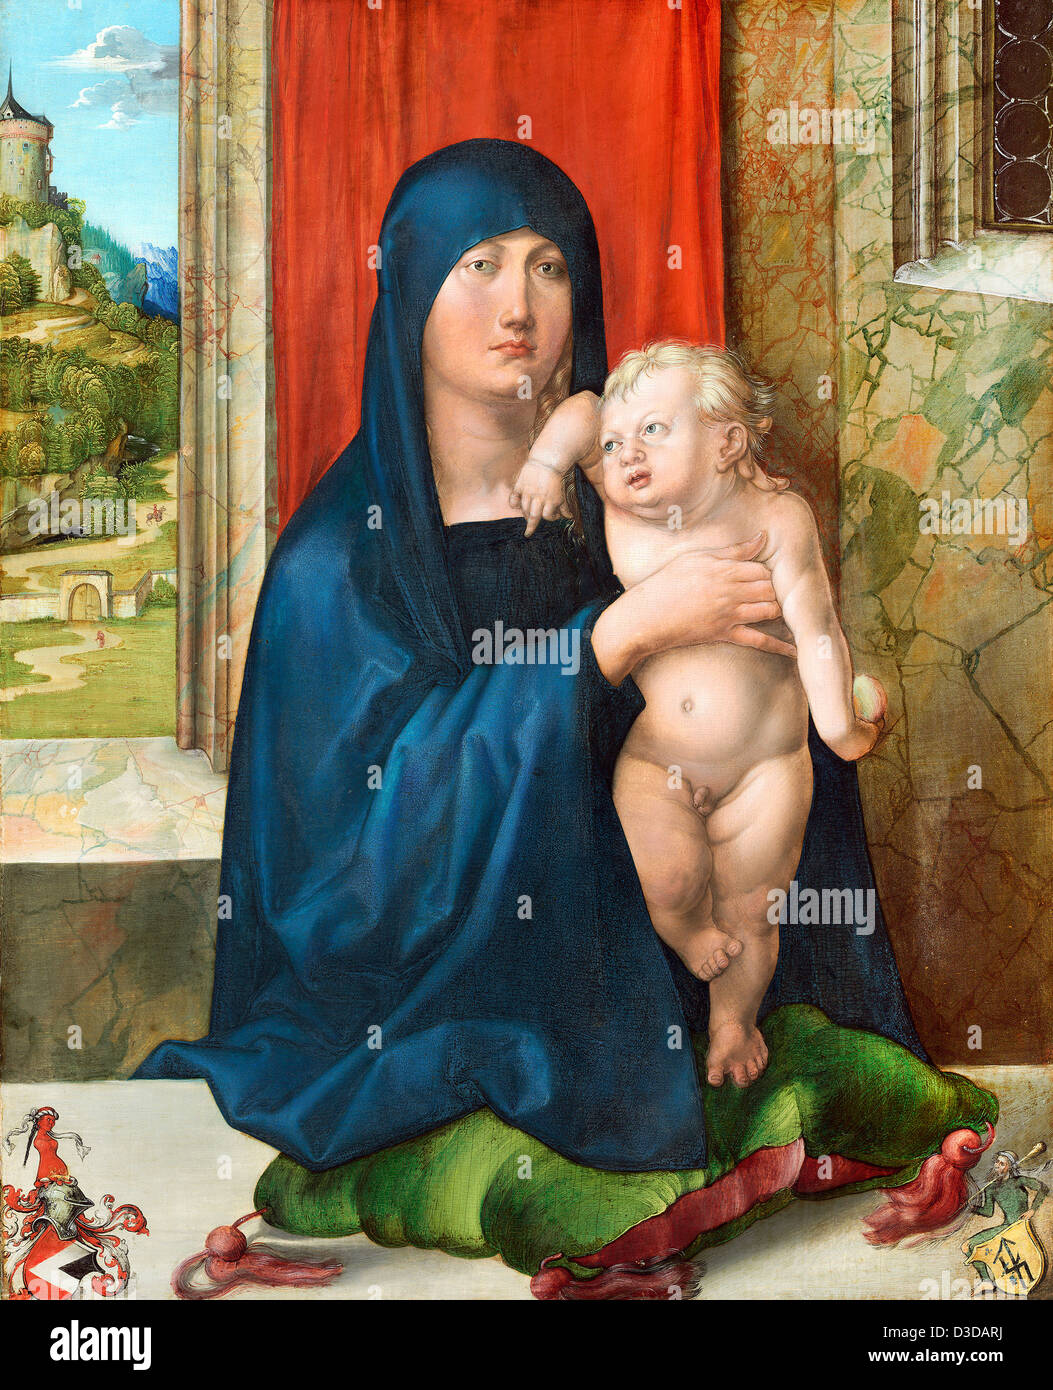 Albrecht Dürer, Madonna und Kind 1499 Öl auf Holz. National Gallery of Art, Washington Stockbild